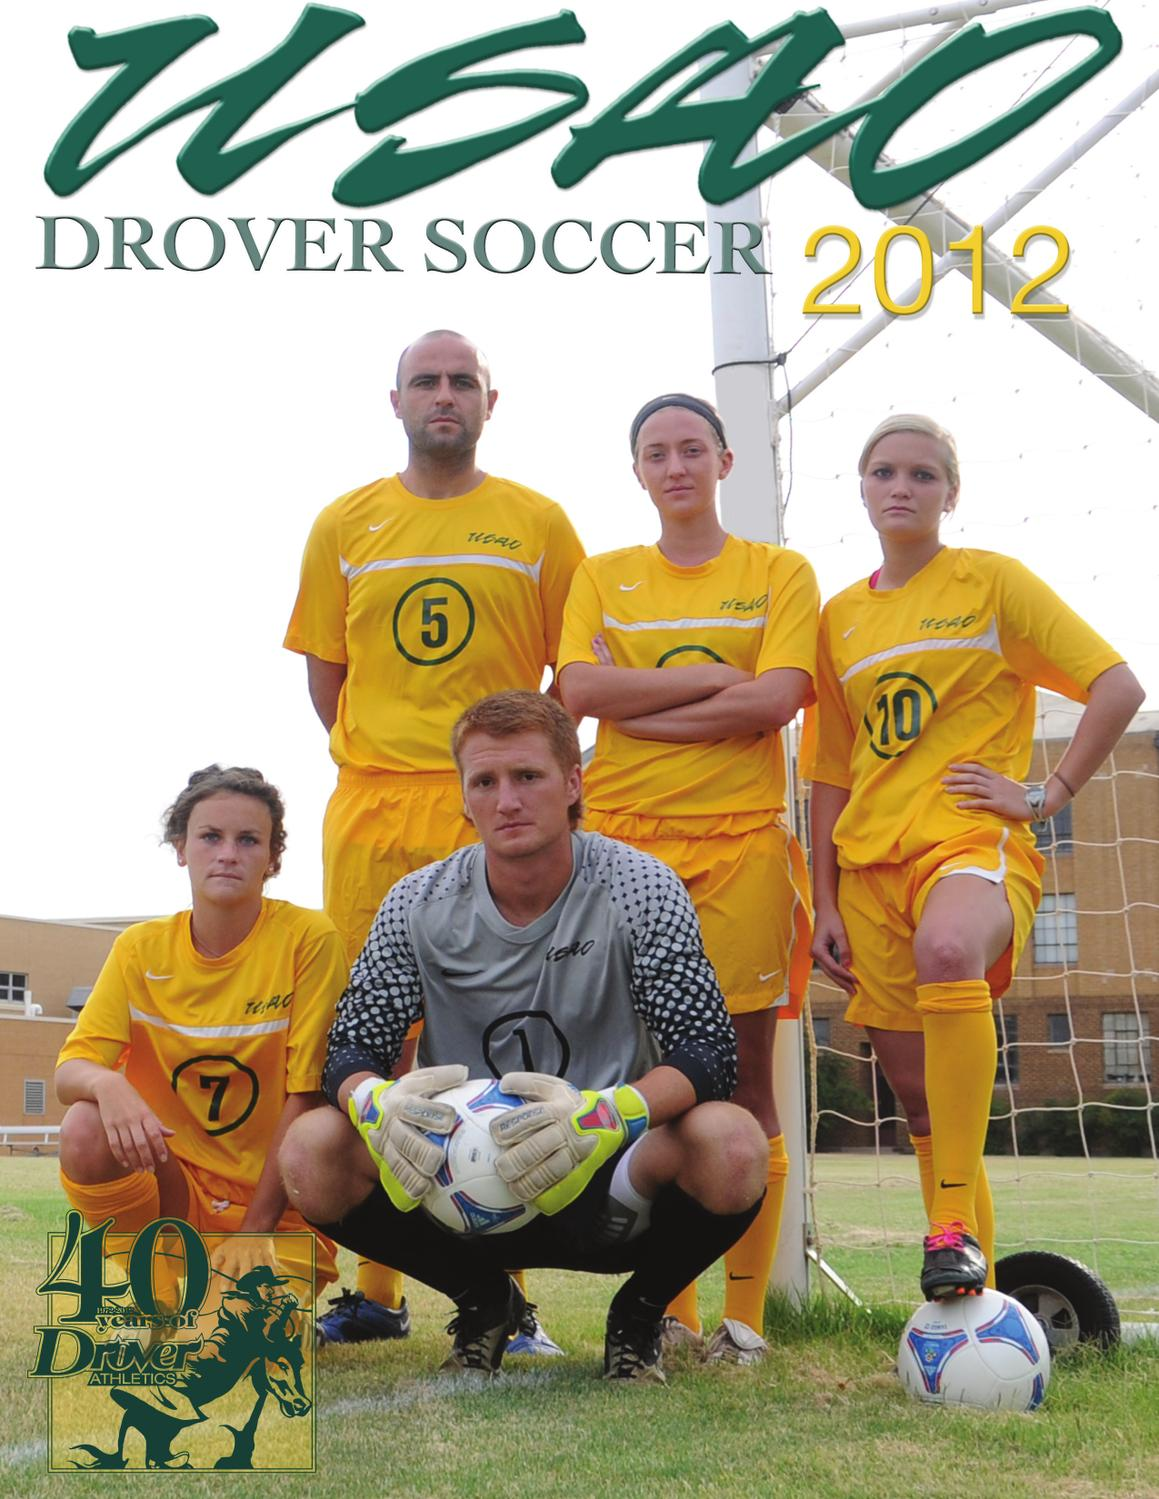 2012 usao soccer media guide by university of science and arts of